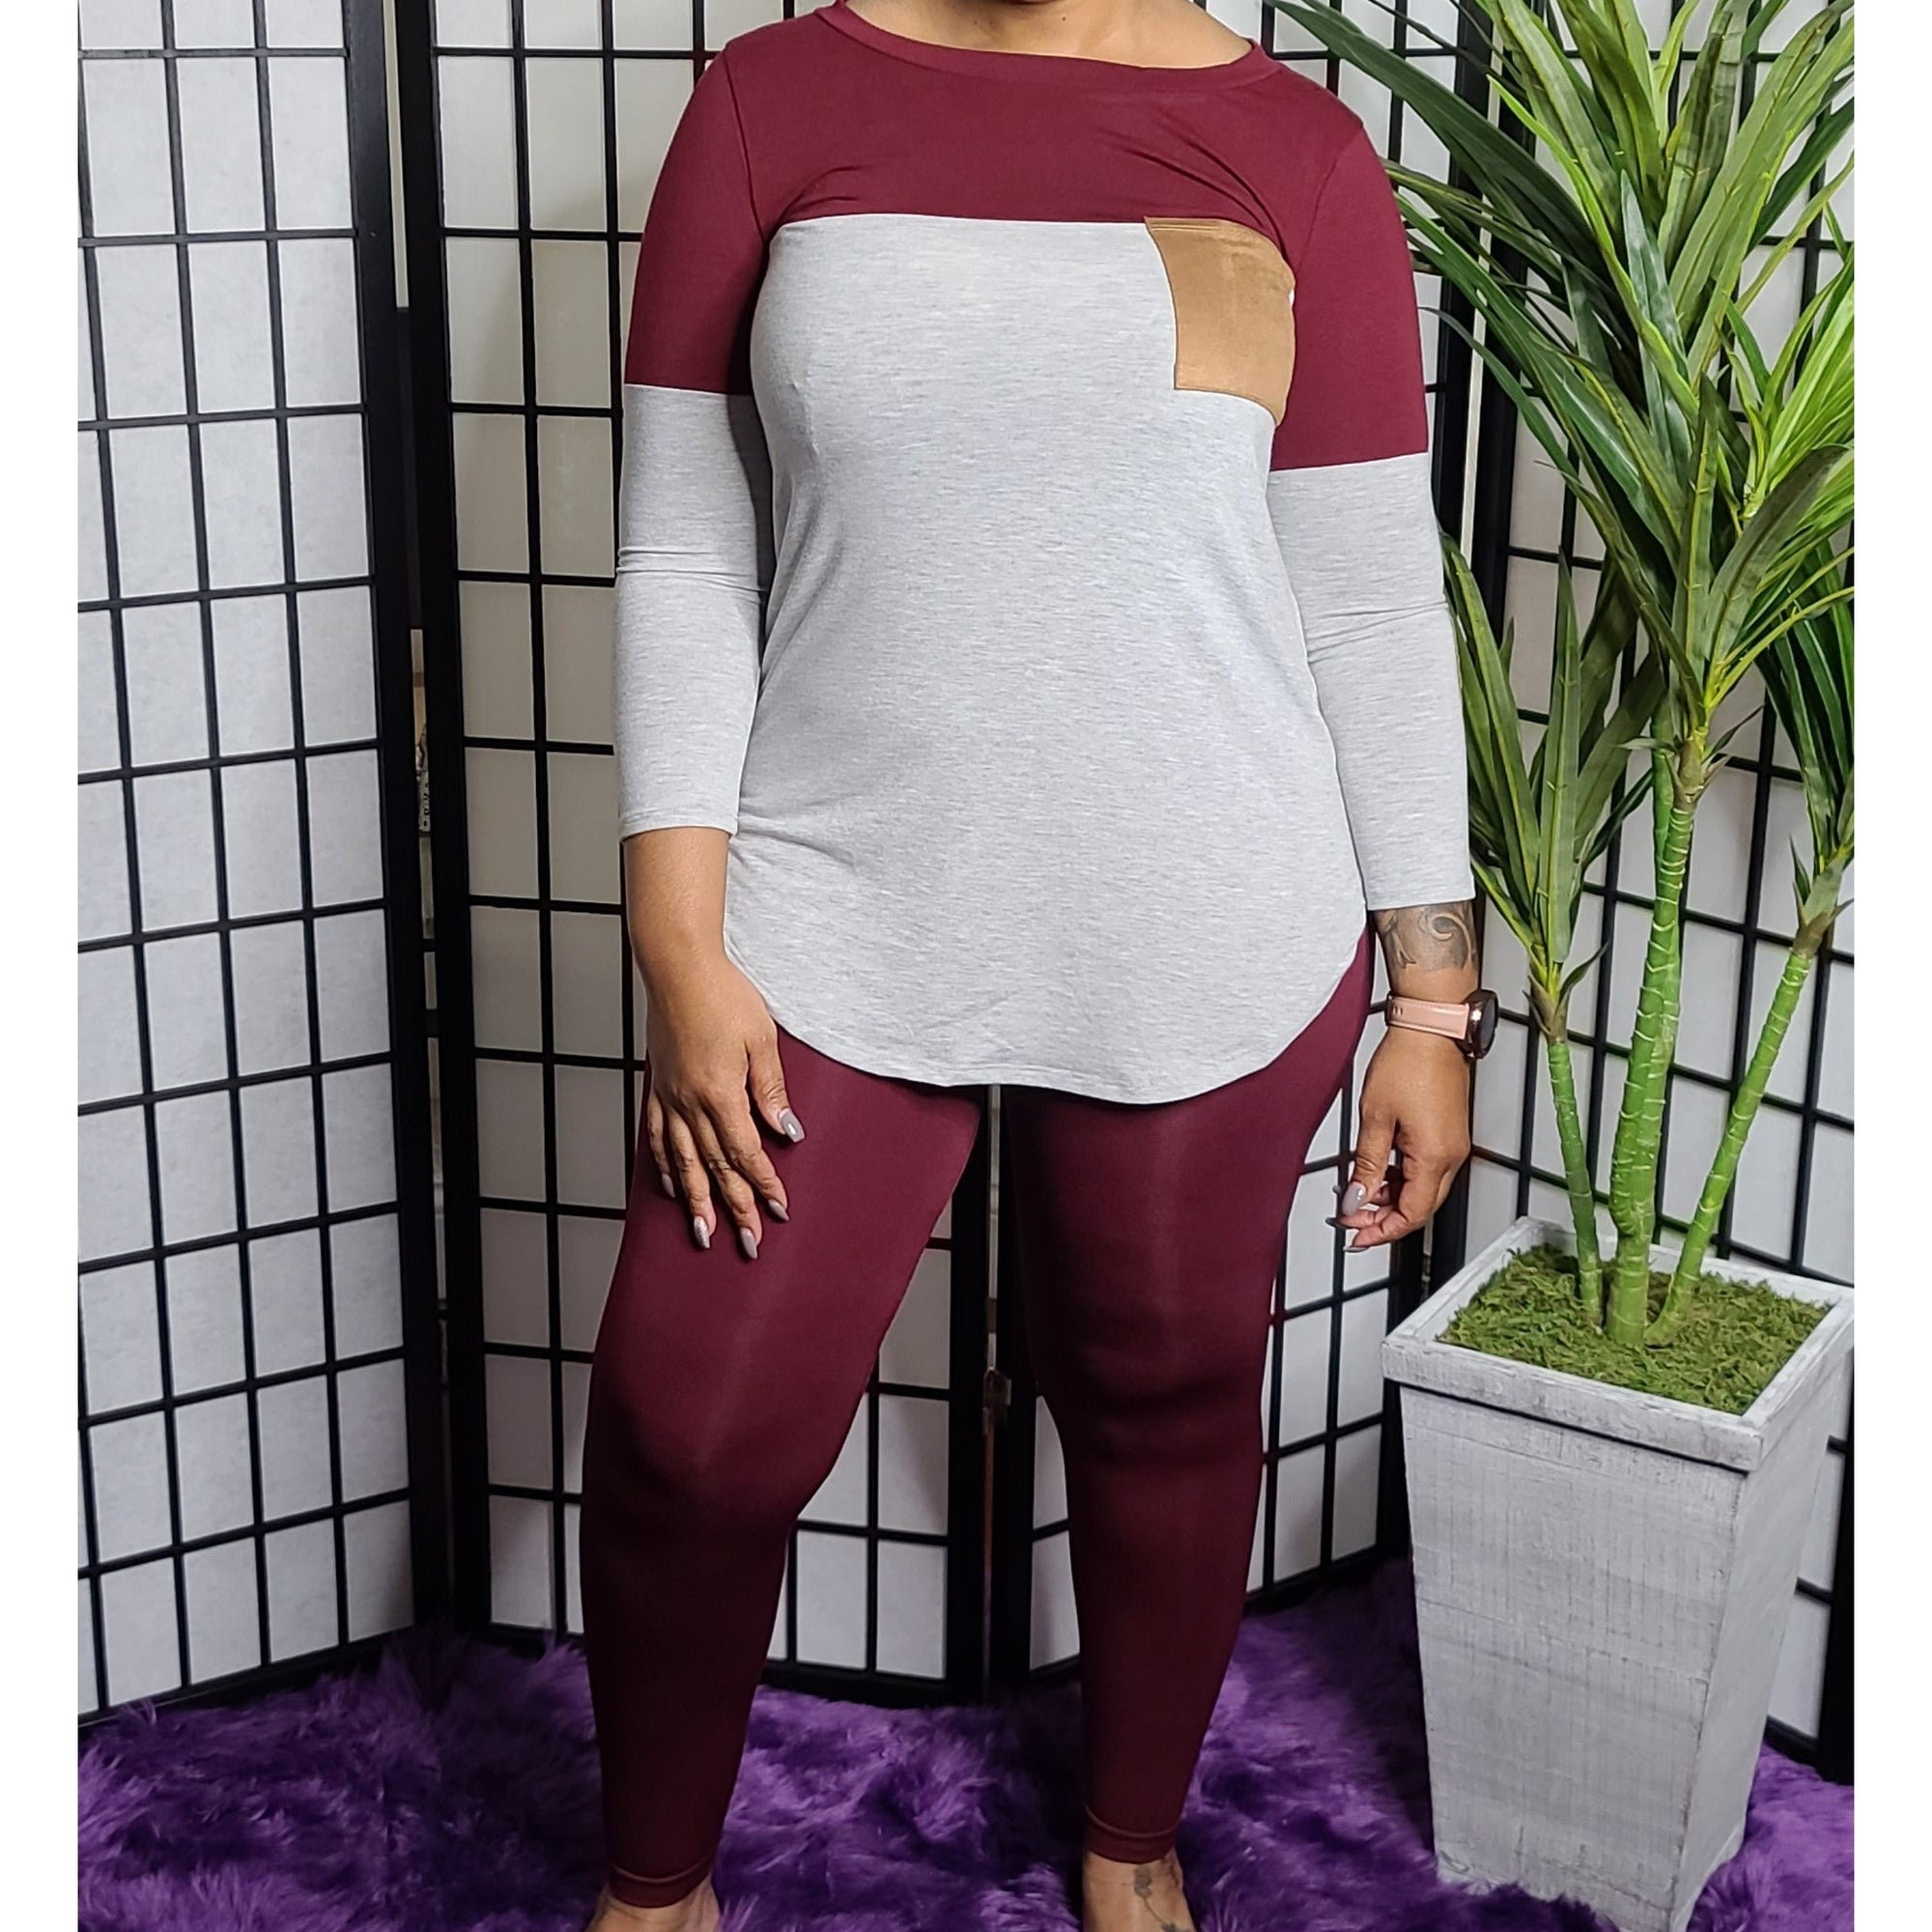 Cam ꟾ Legging Set - Grey/Burgundy